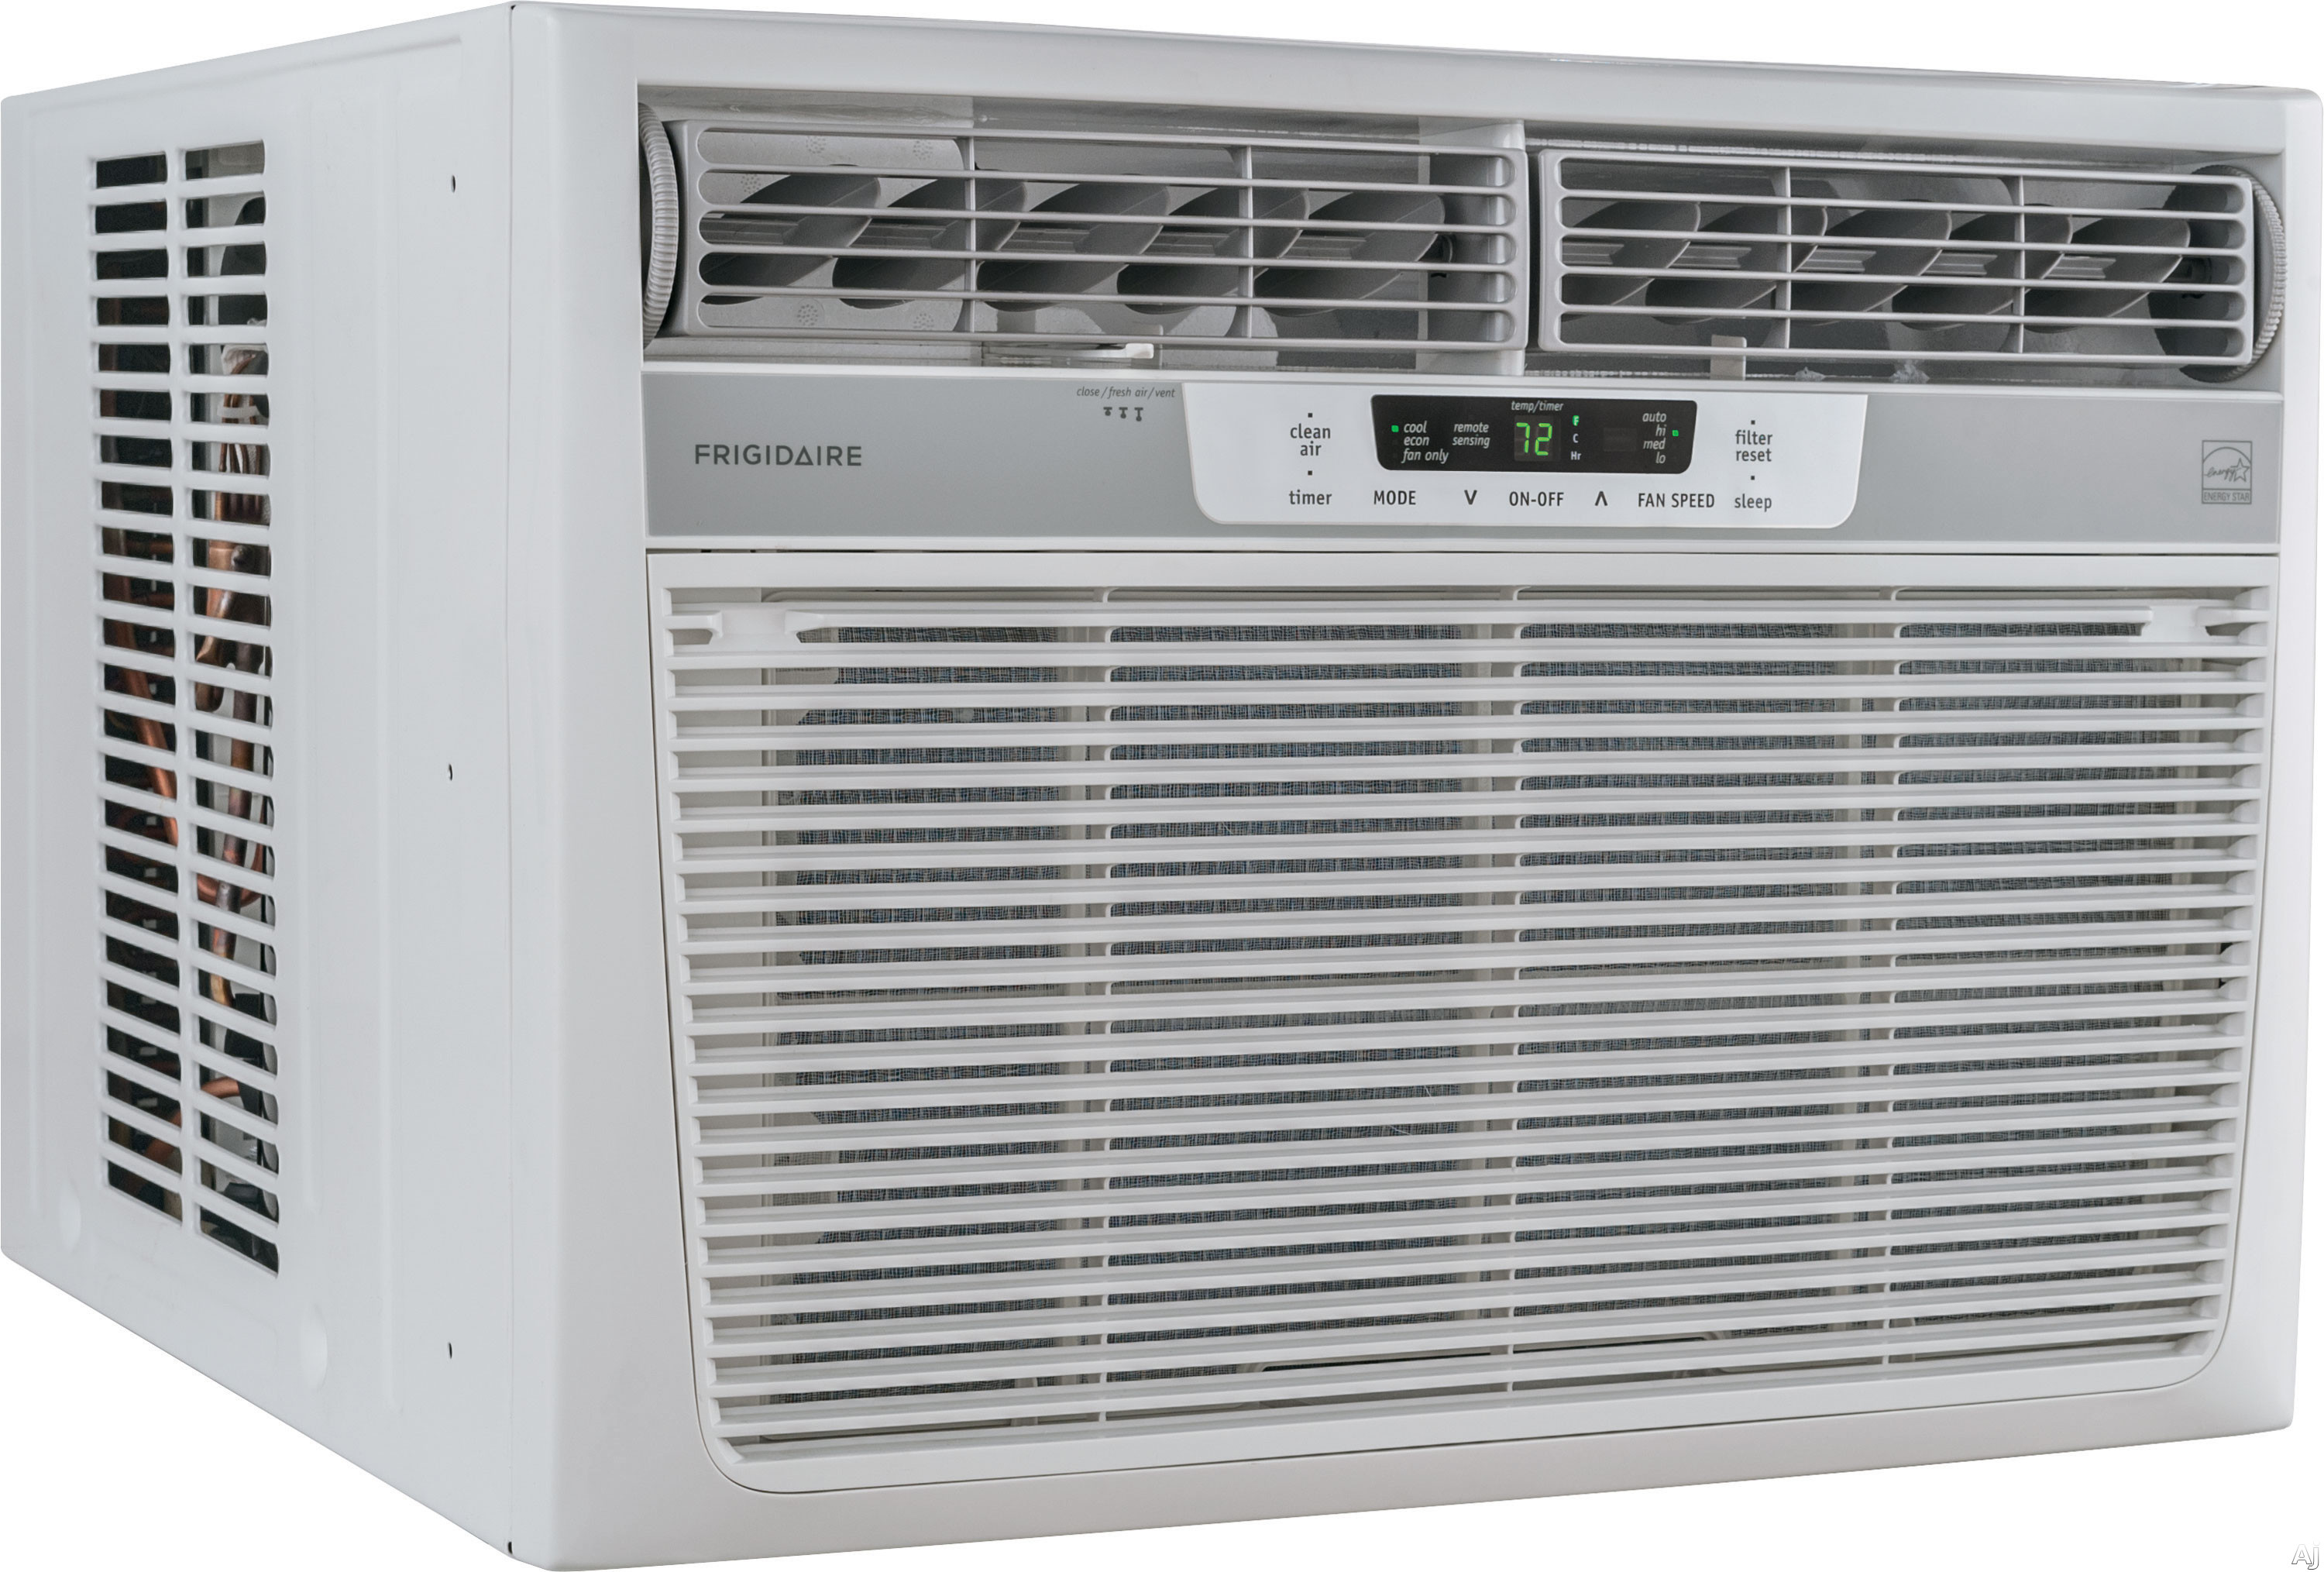 Home > Air Conditioners > Room Air Conditioners > FFRE1533Q1 #5E5851